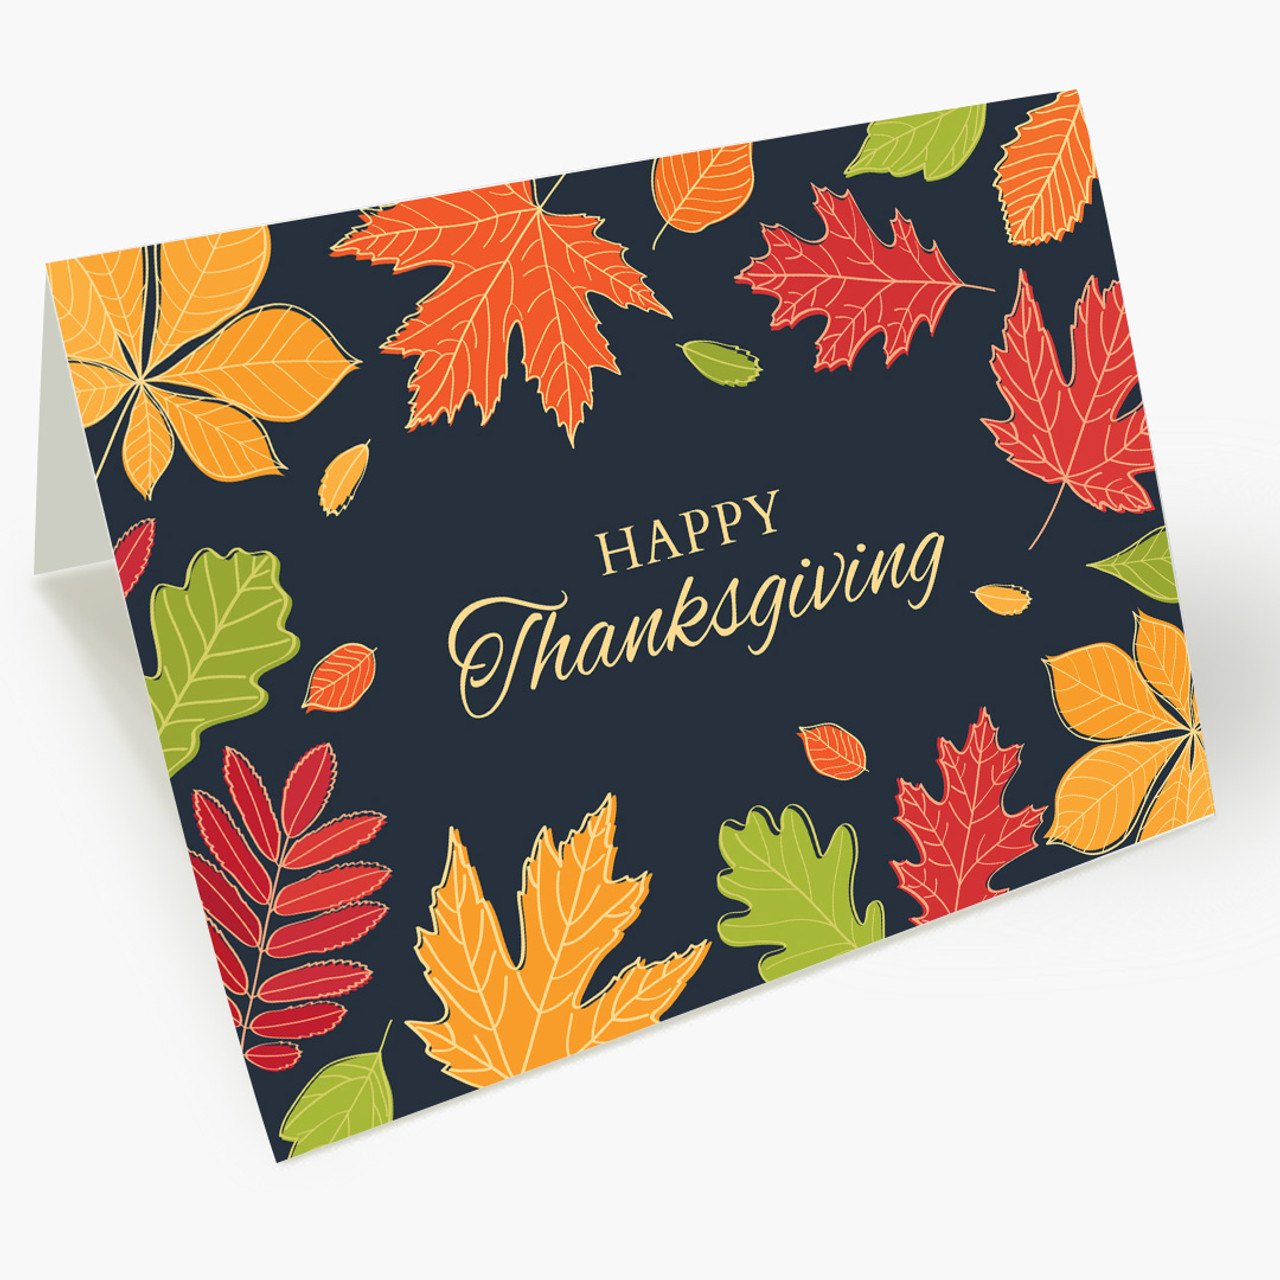 Bright Autumn Wishes Thanksgiving Card